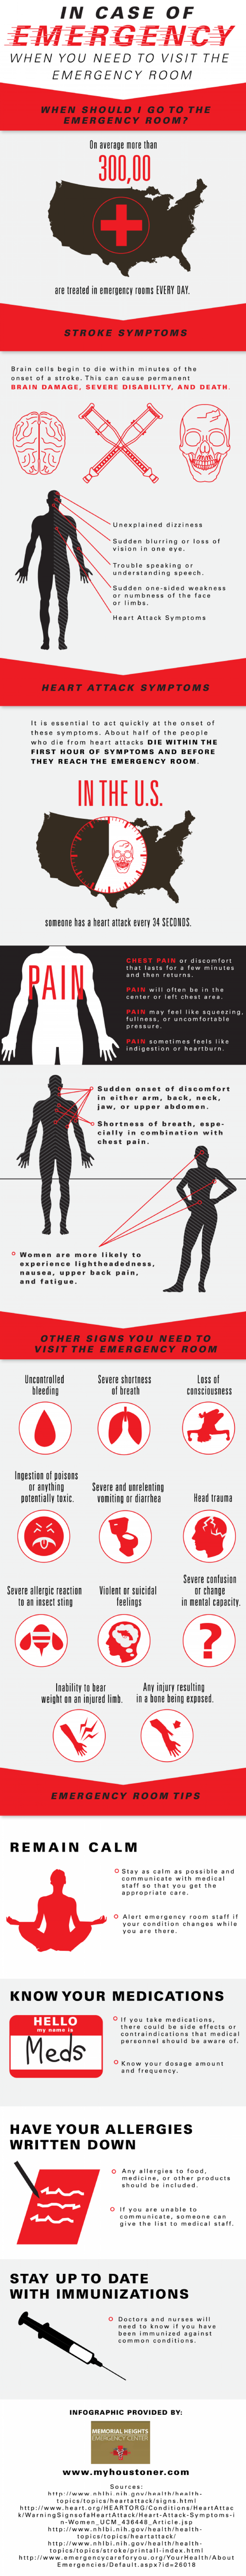 In Case of Emergency: When You Need to Visit the Emergency Room Infographic